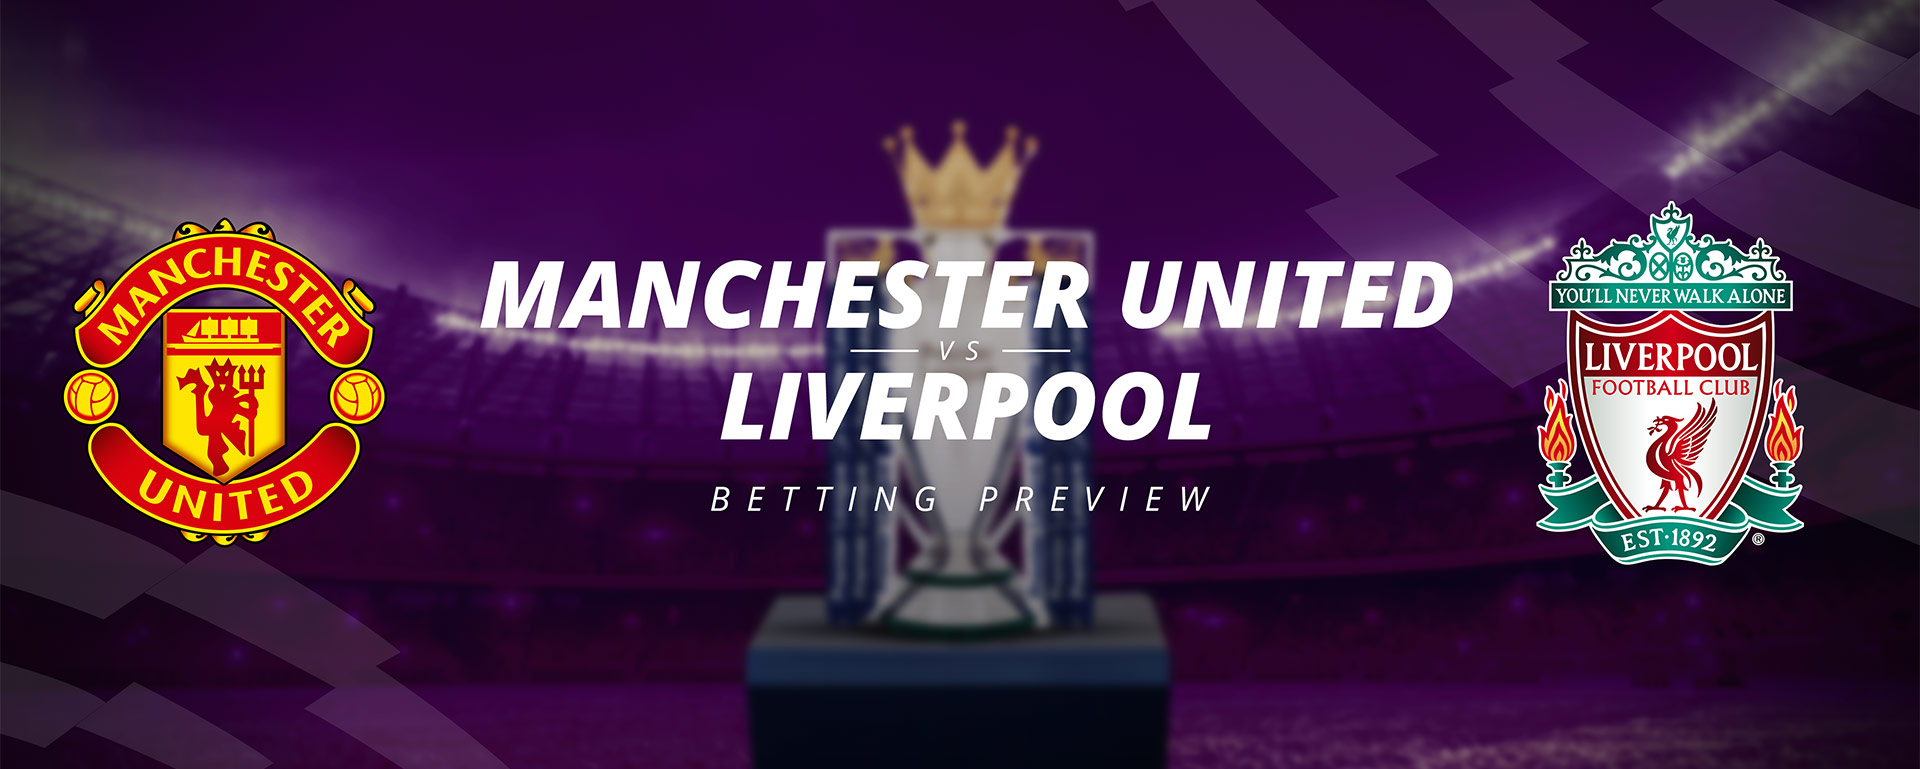 MANCHESTER UNITED VS LIVERPOOL: BETTING PREVIEW